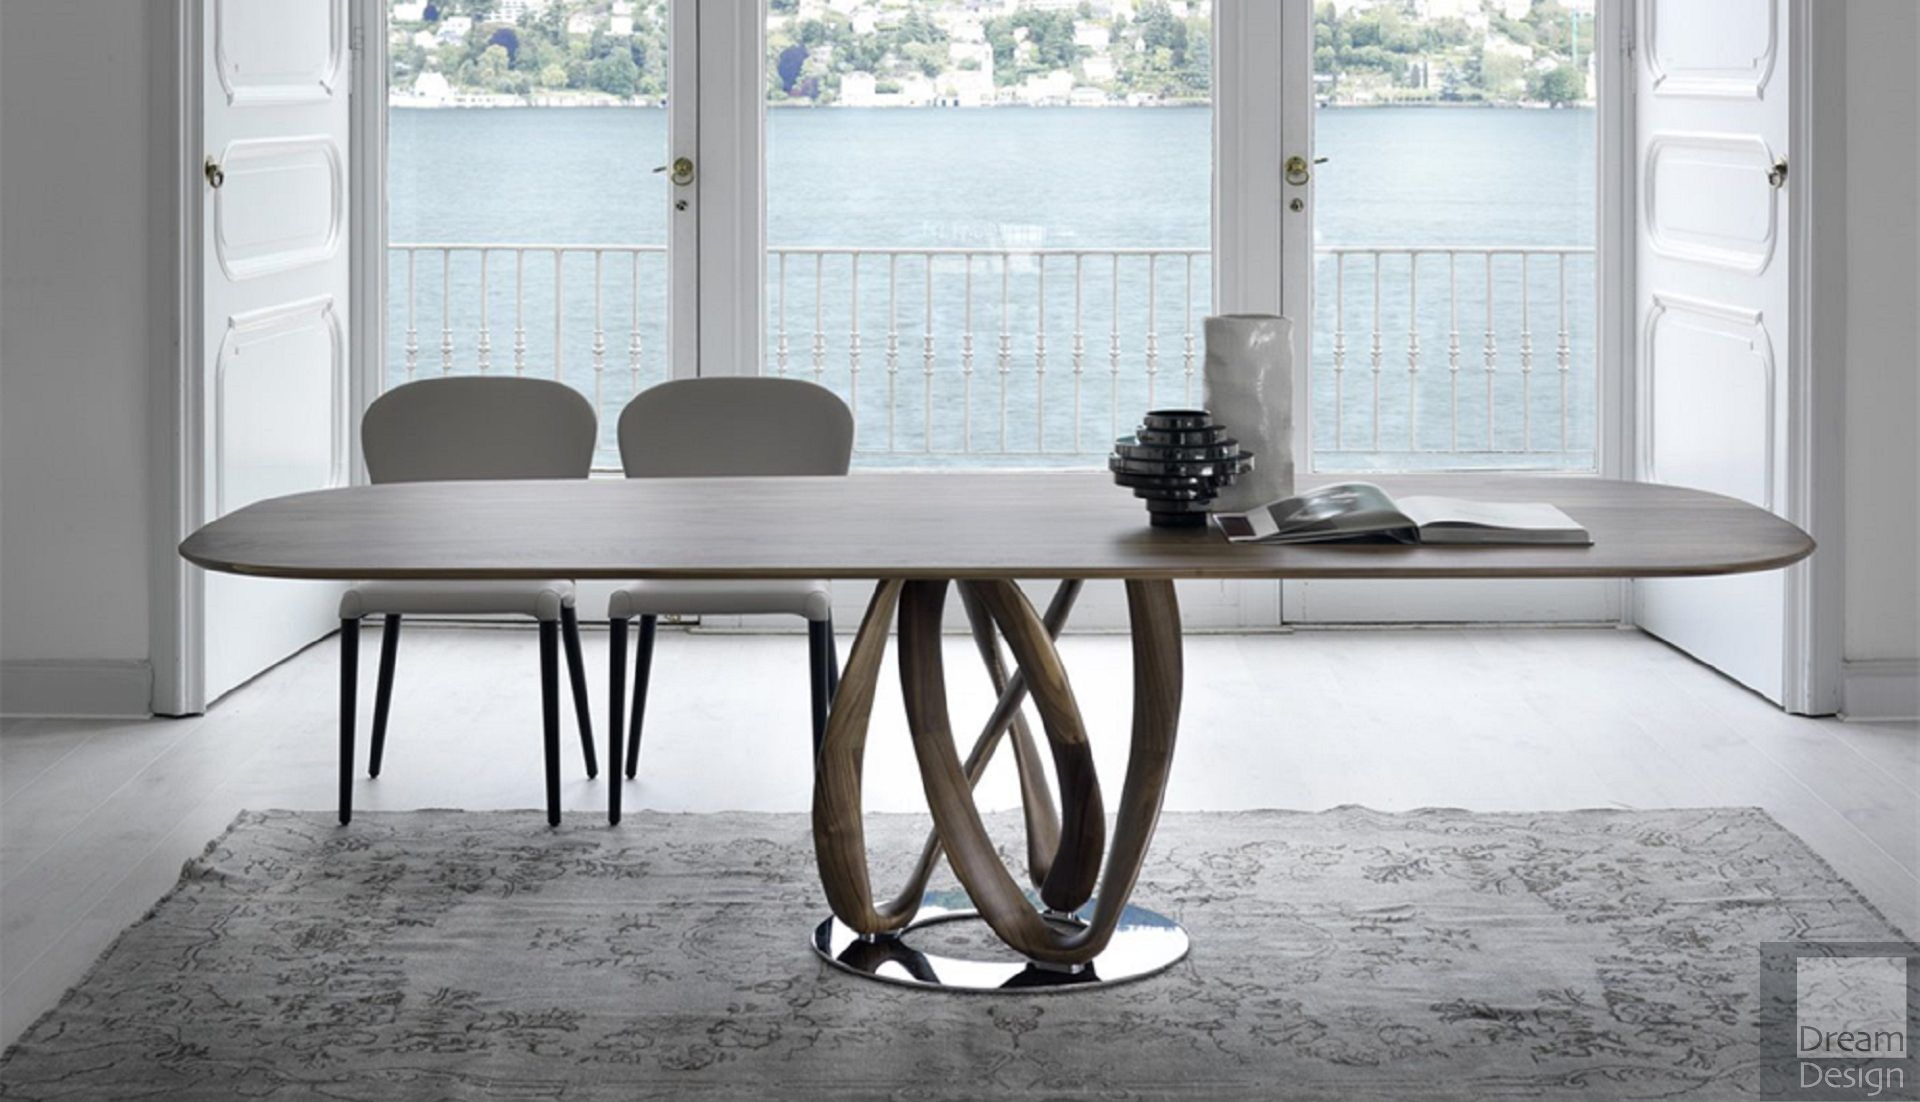 Porada Infinity Oval Wood Table